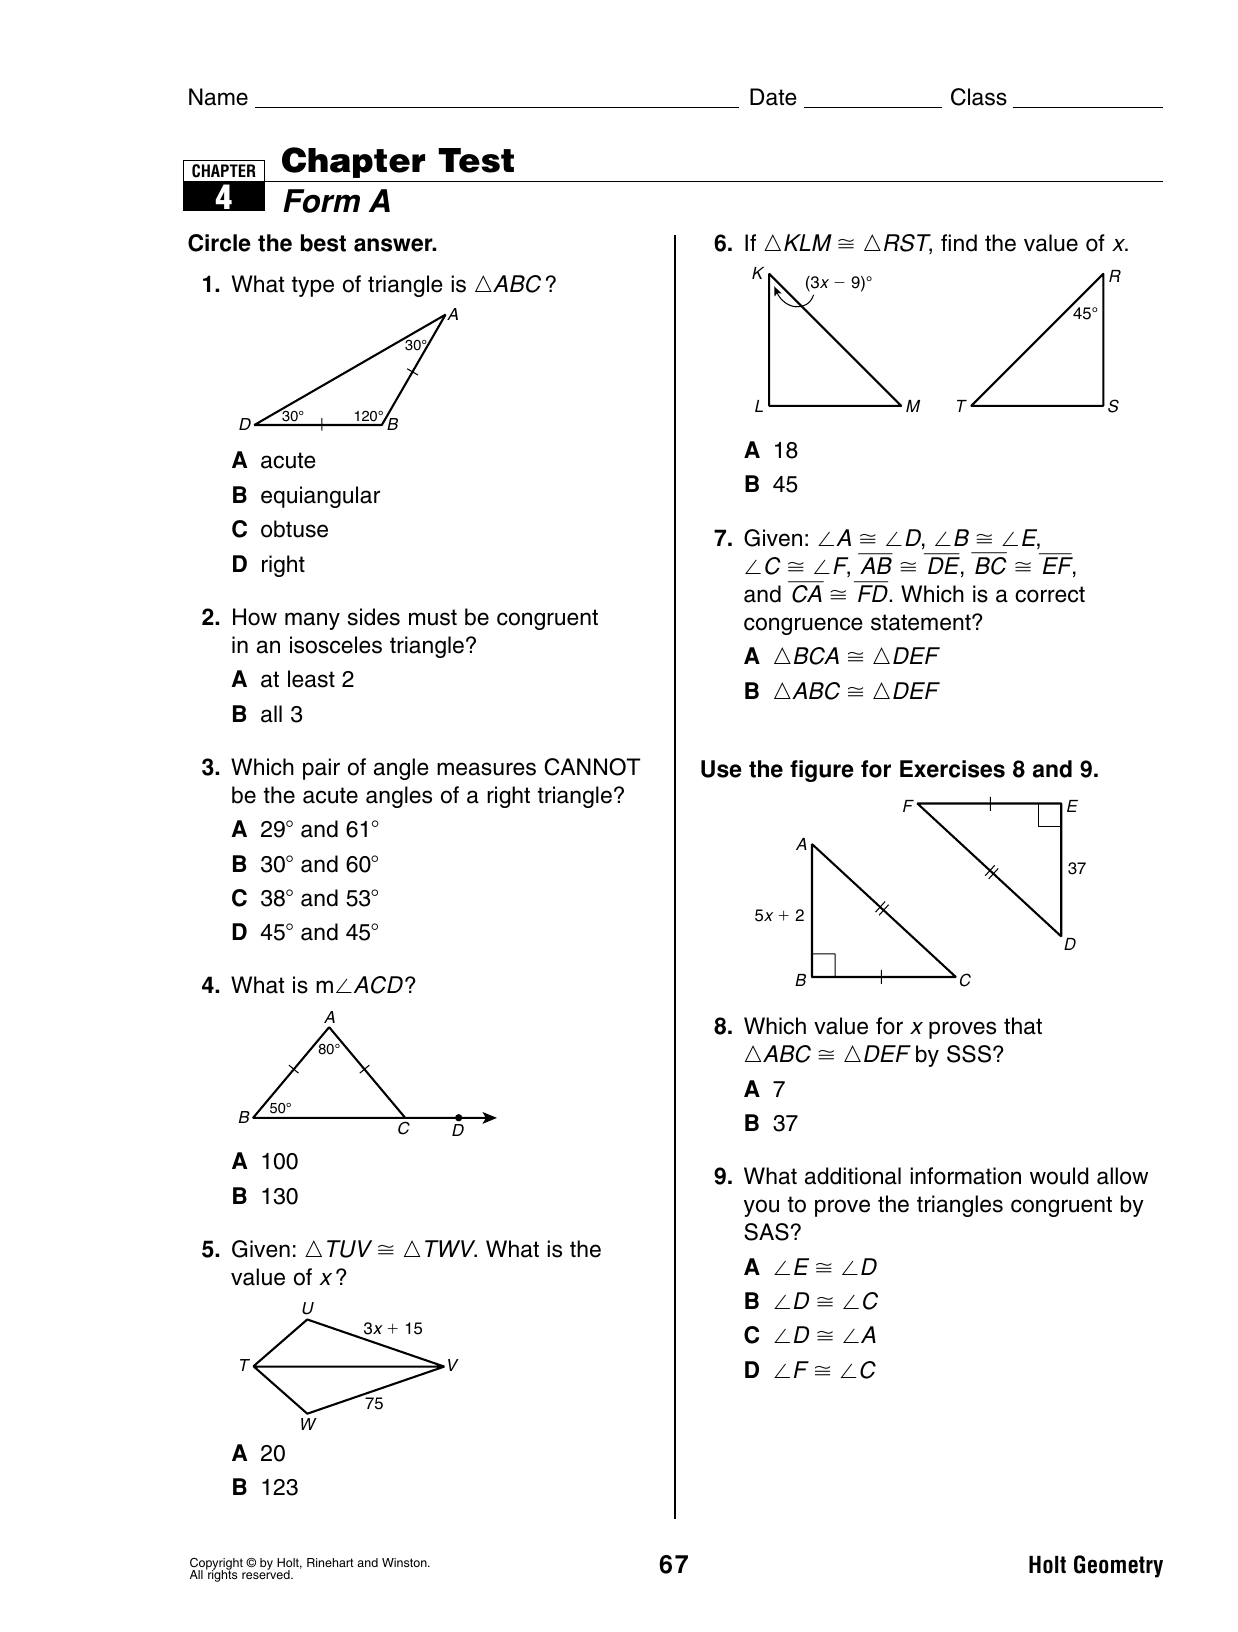 Bestseller: Holt Geometry Chapter 6 Test Answer Key